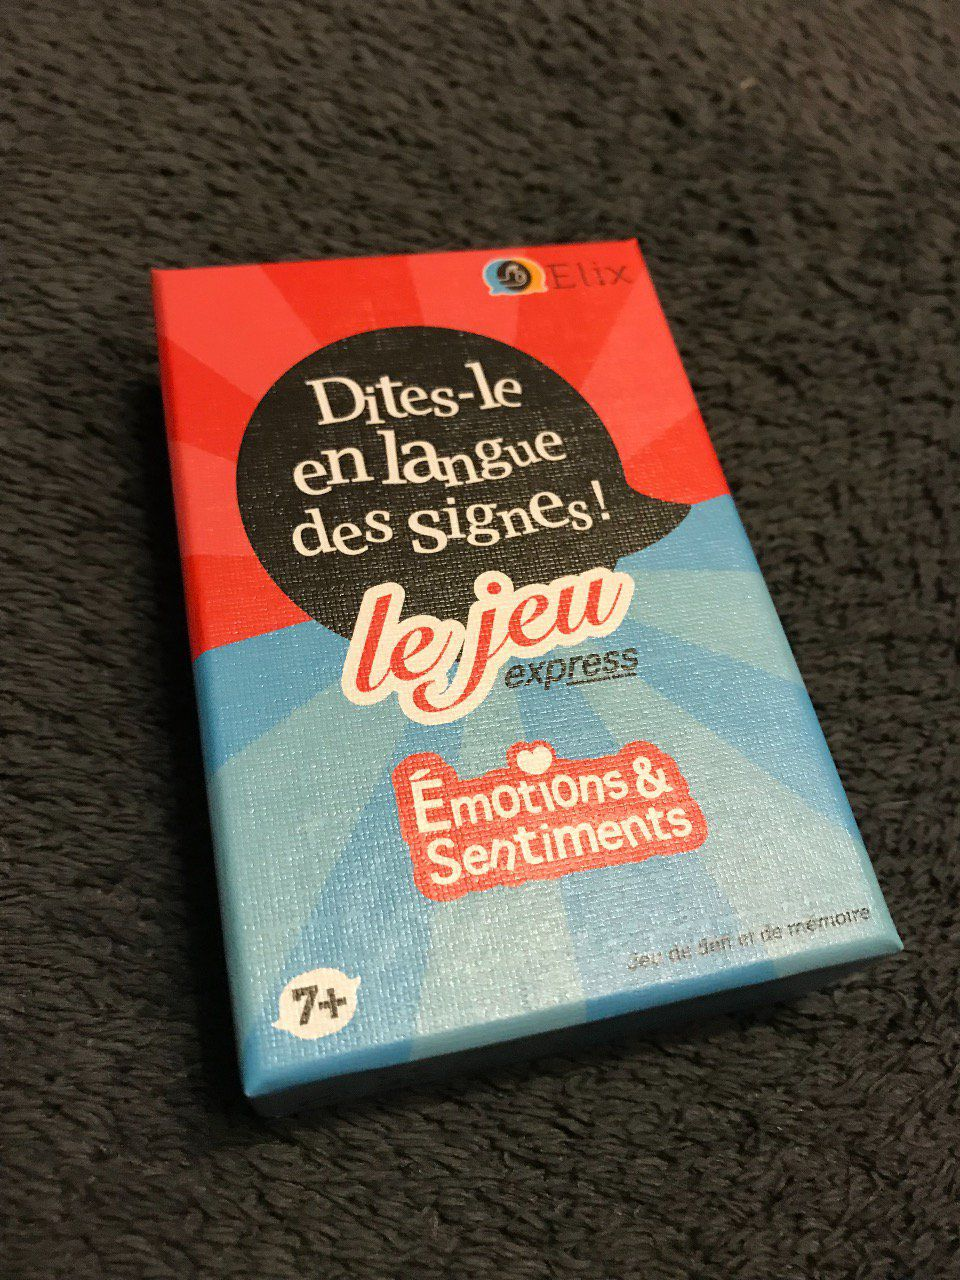 Emotions et Sentiments - Dites-le en Langue des Signes